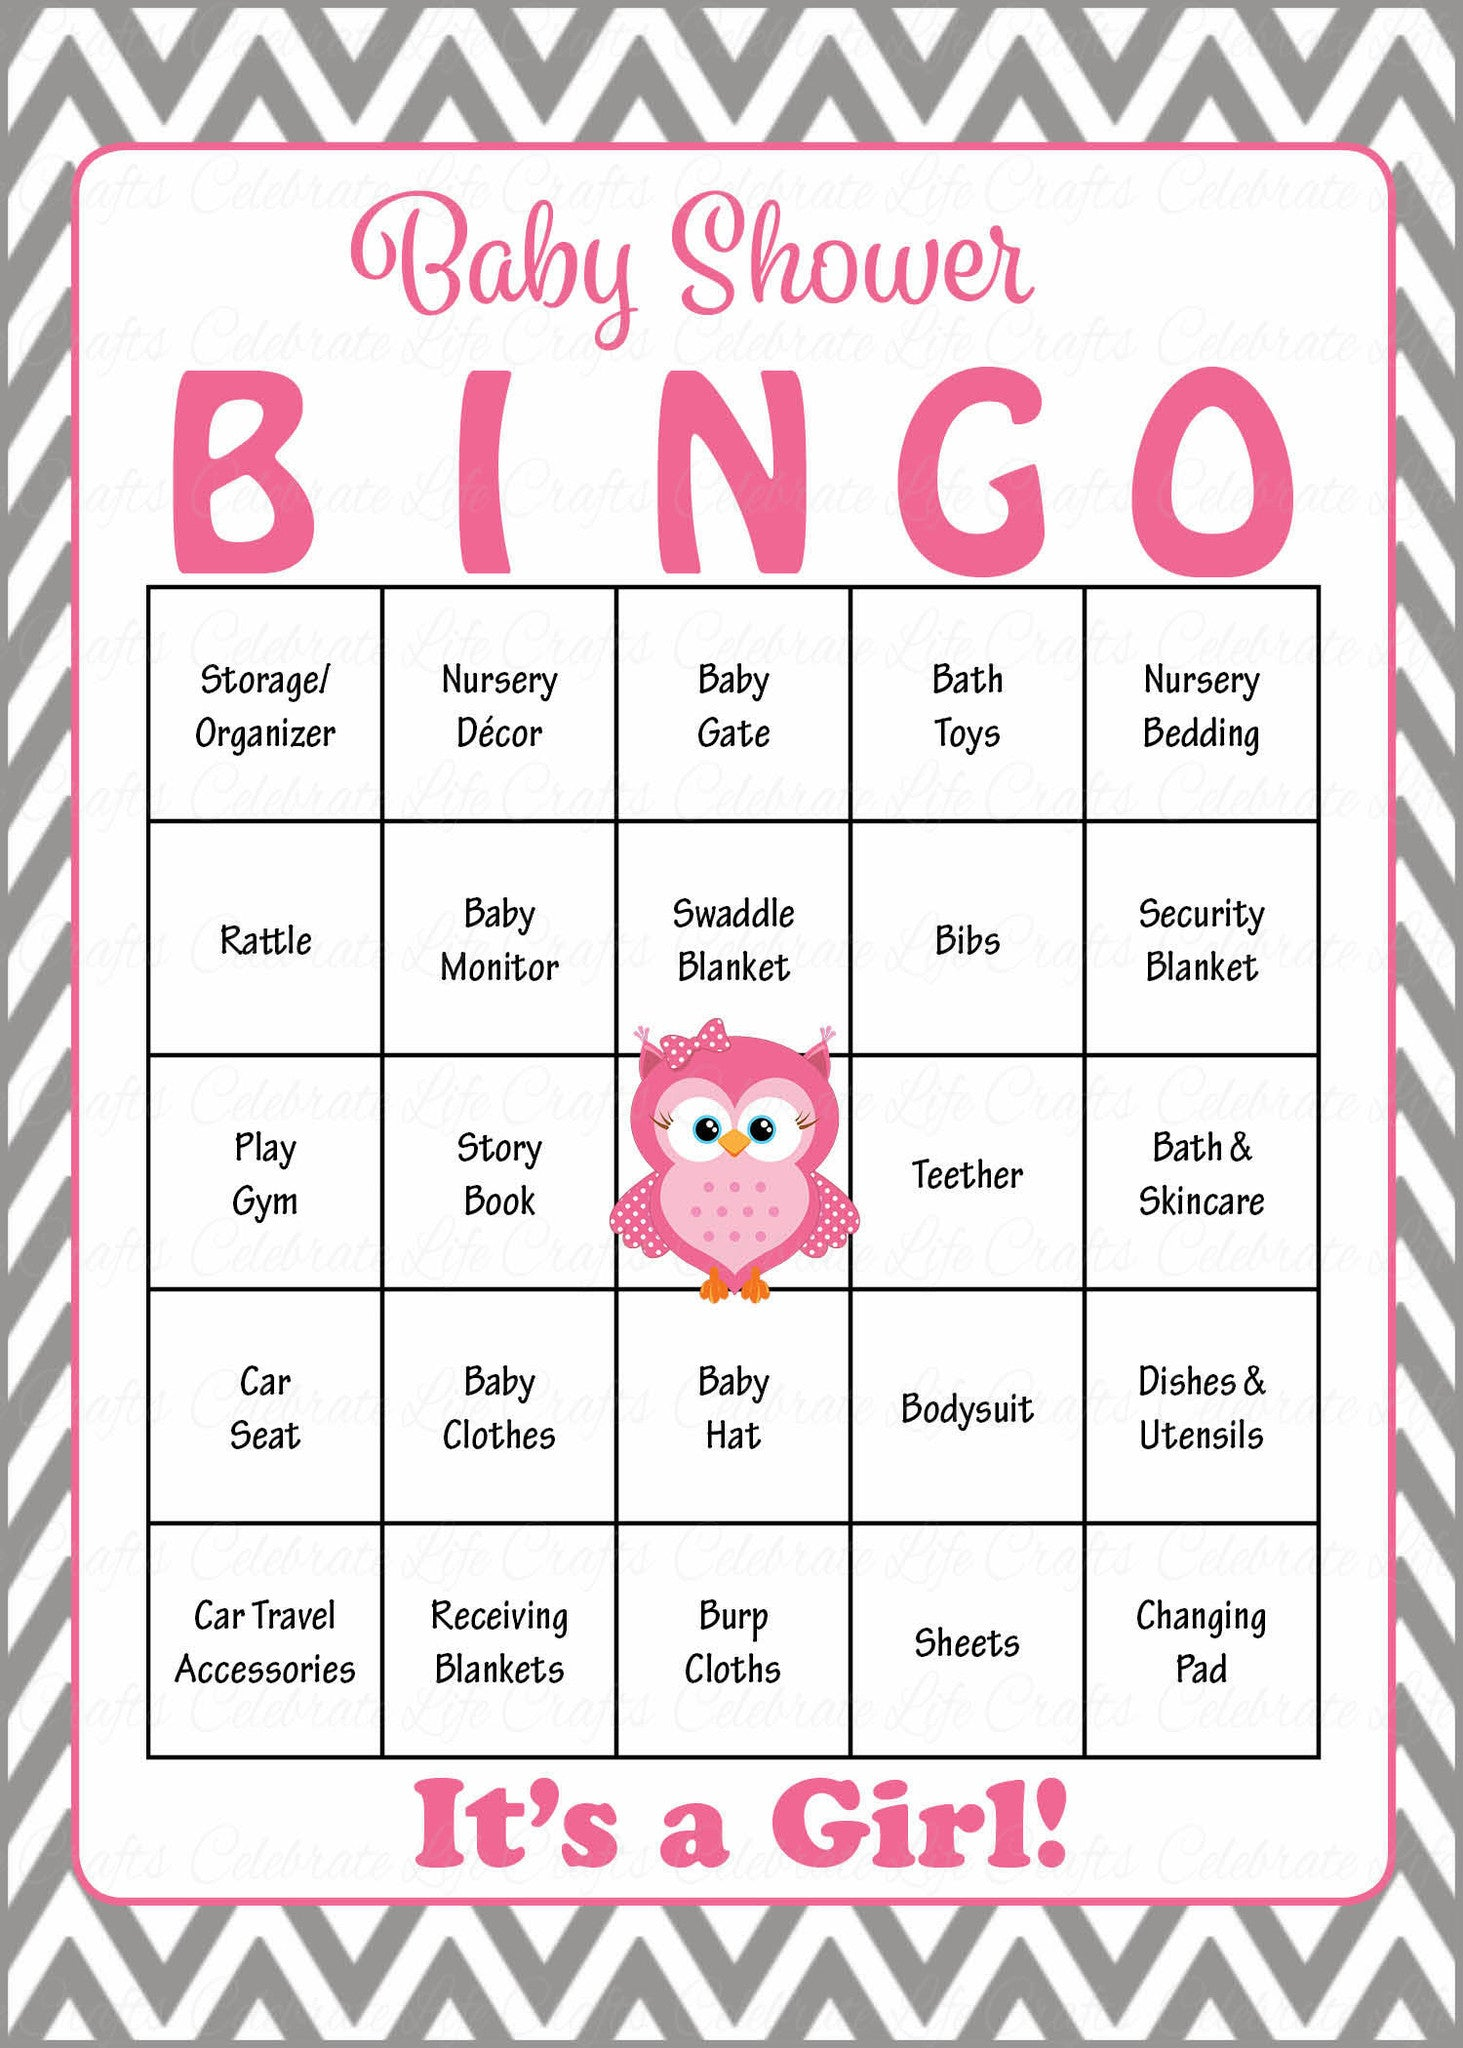 Owl baby shower game download for girl baby bingo celebrate life owl baby bingo cards printable download prefilled baby shower game for girl pink gray solutioingenieria Gallery